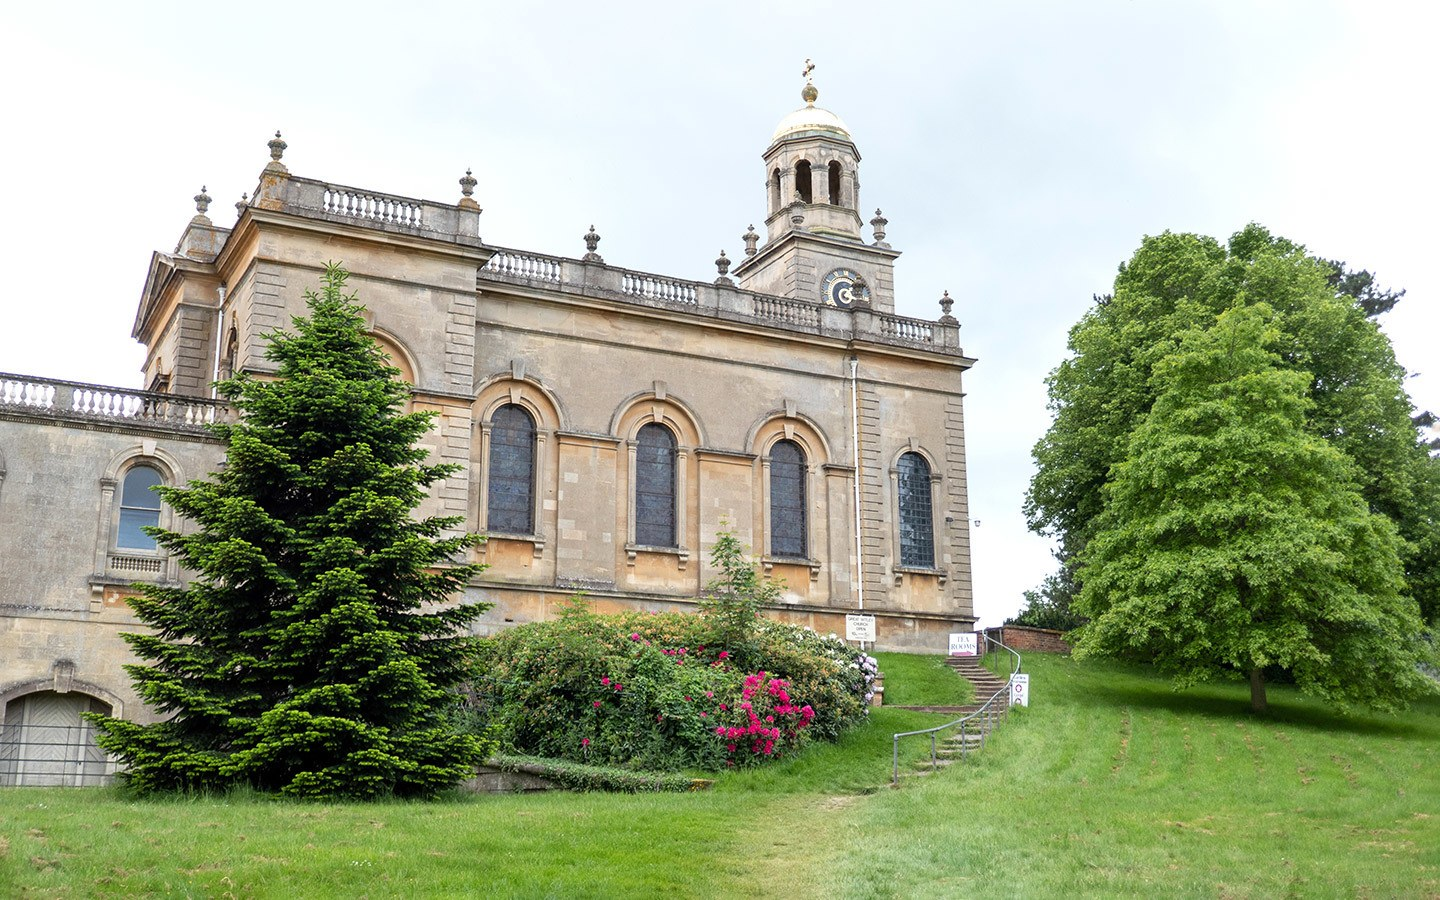 The exterior of Great Witley Church in Worcestershire